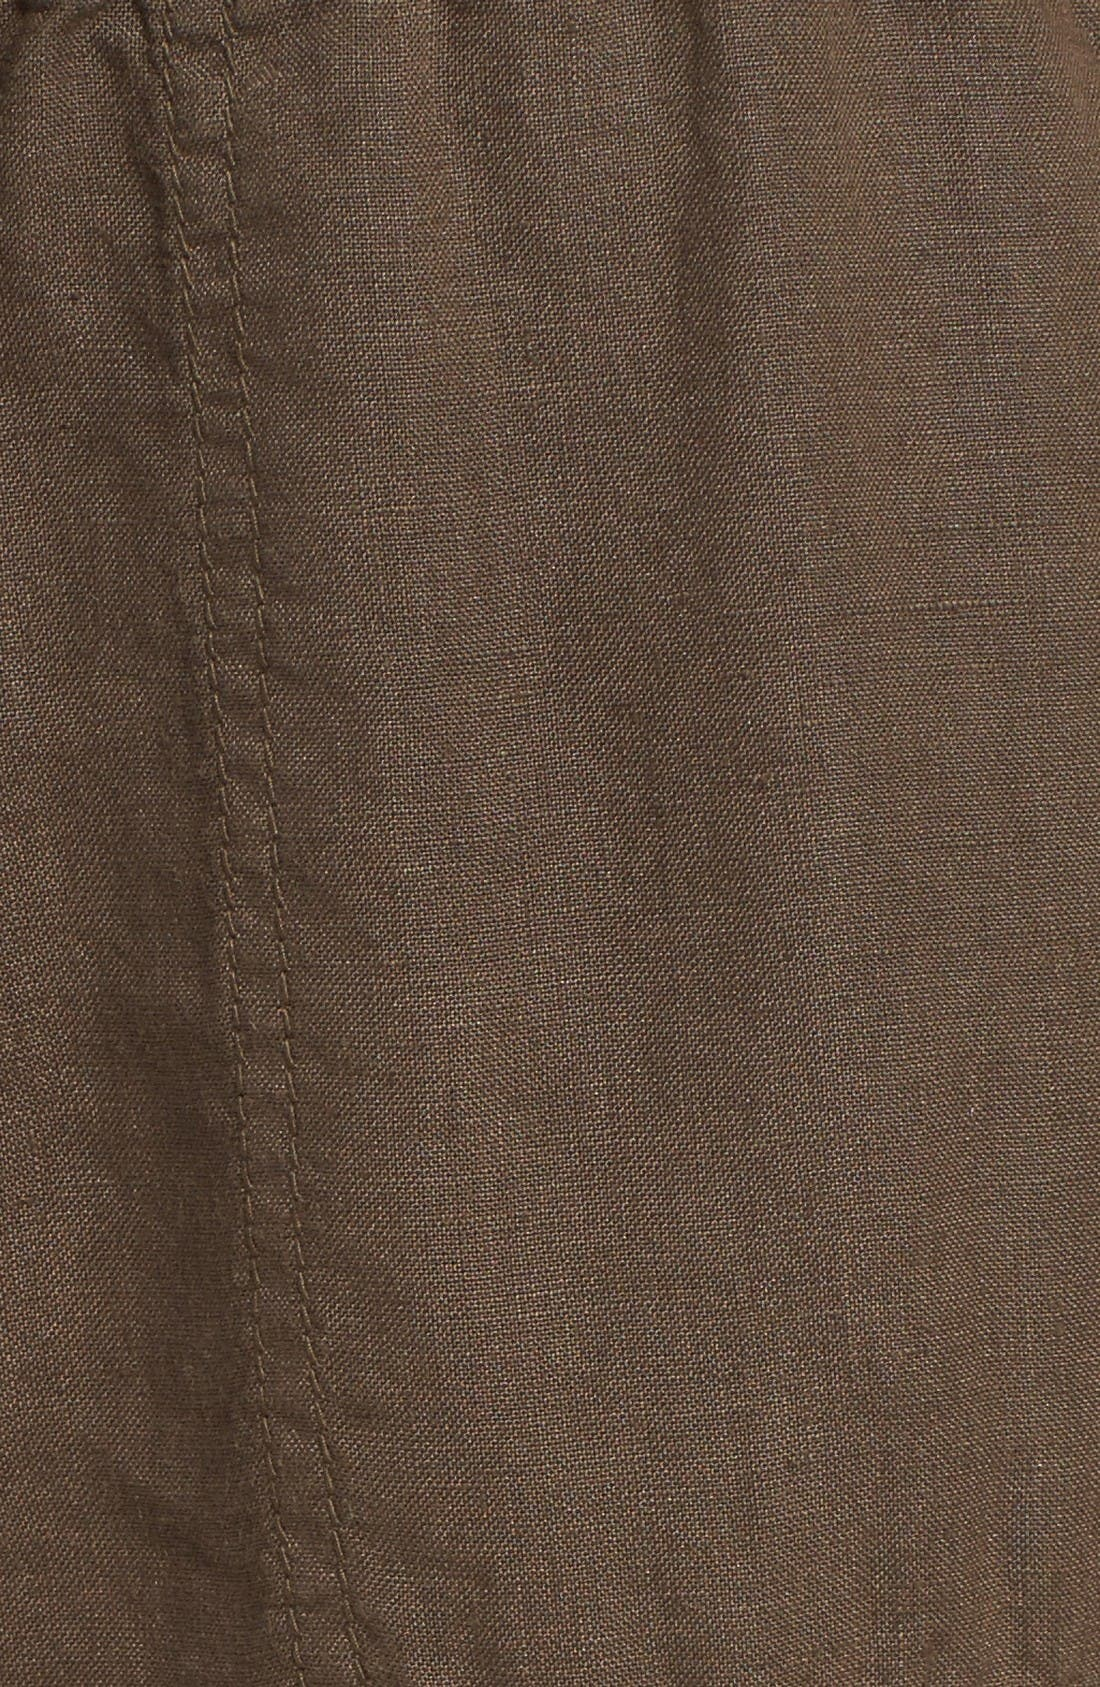 Crop Linen Joggers,                             Alternate thumbnail 6, color,                             Olive Tuscan